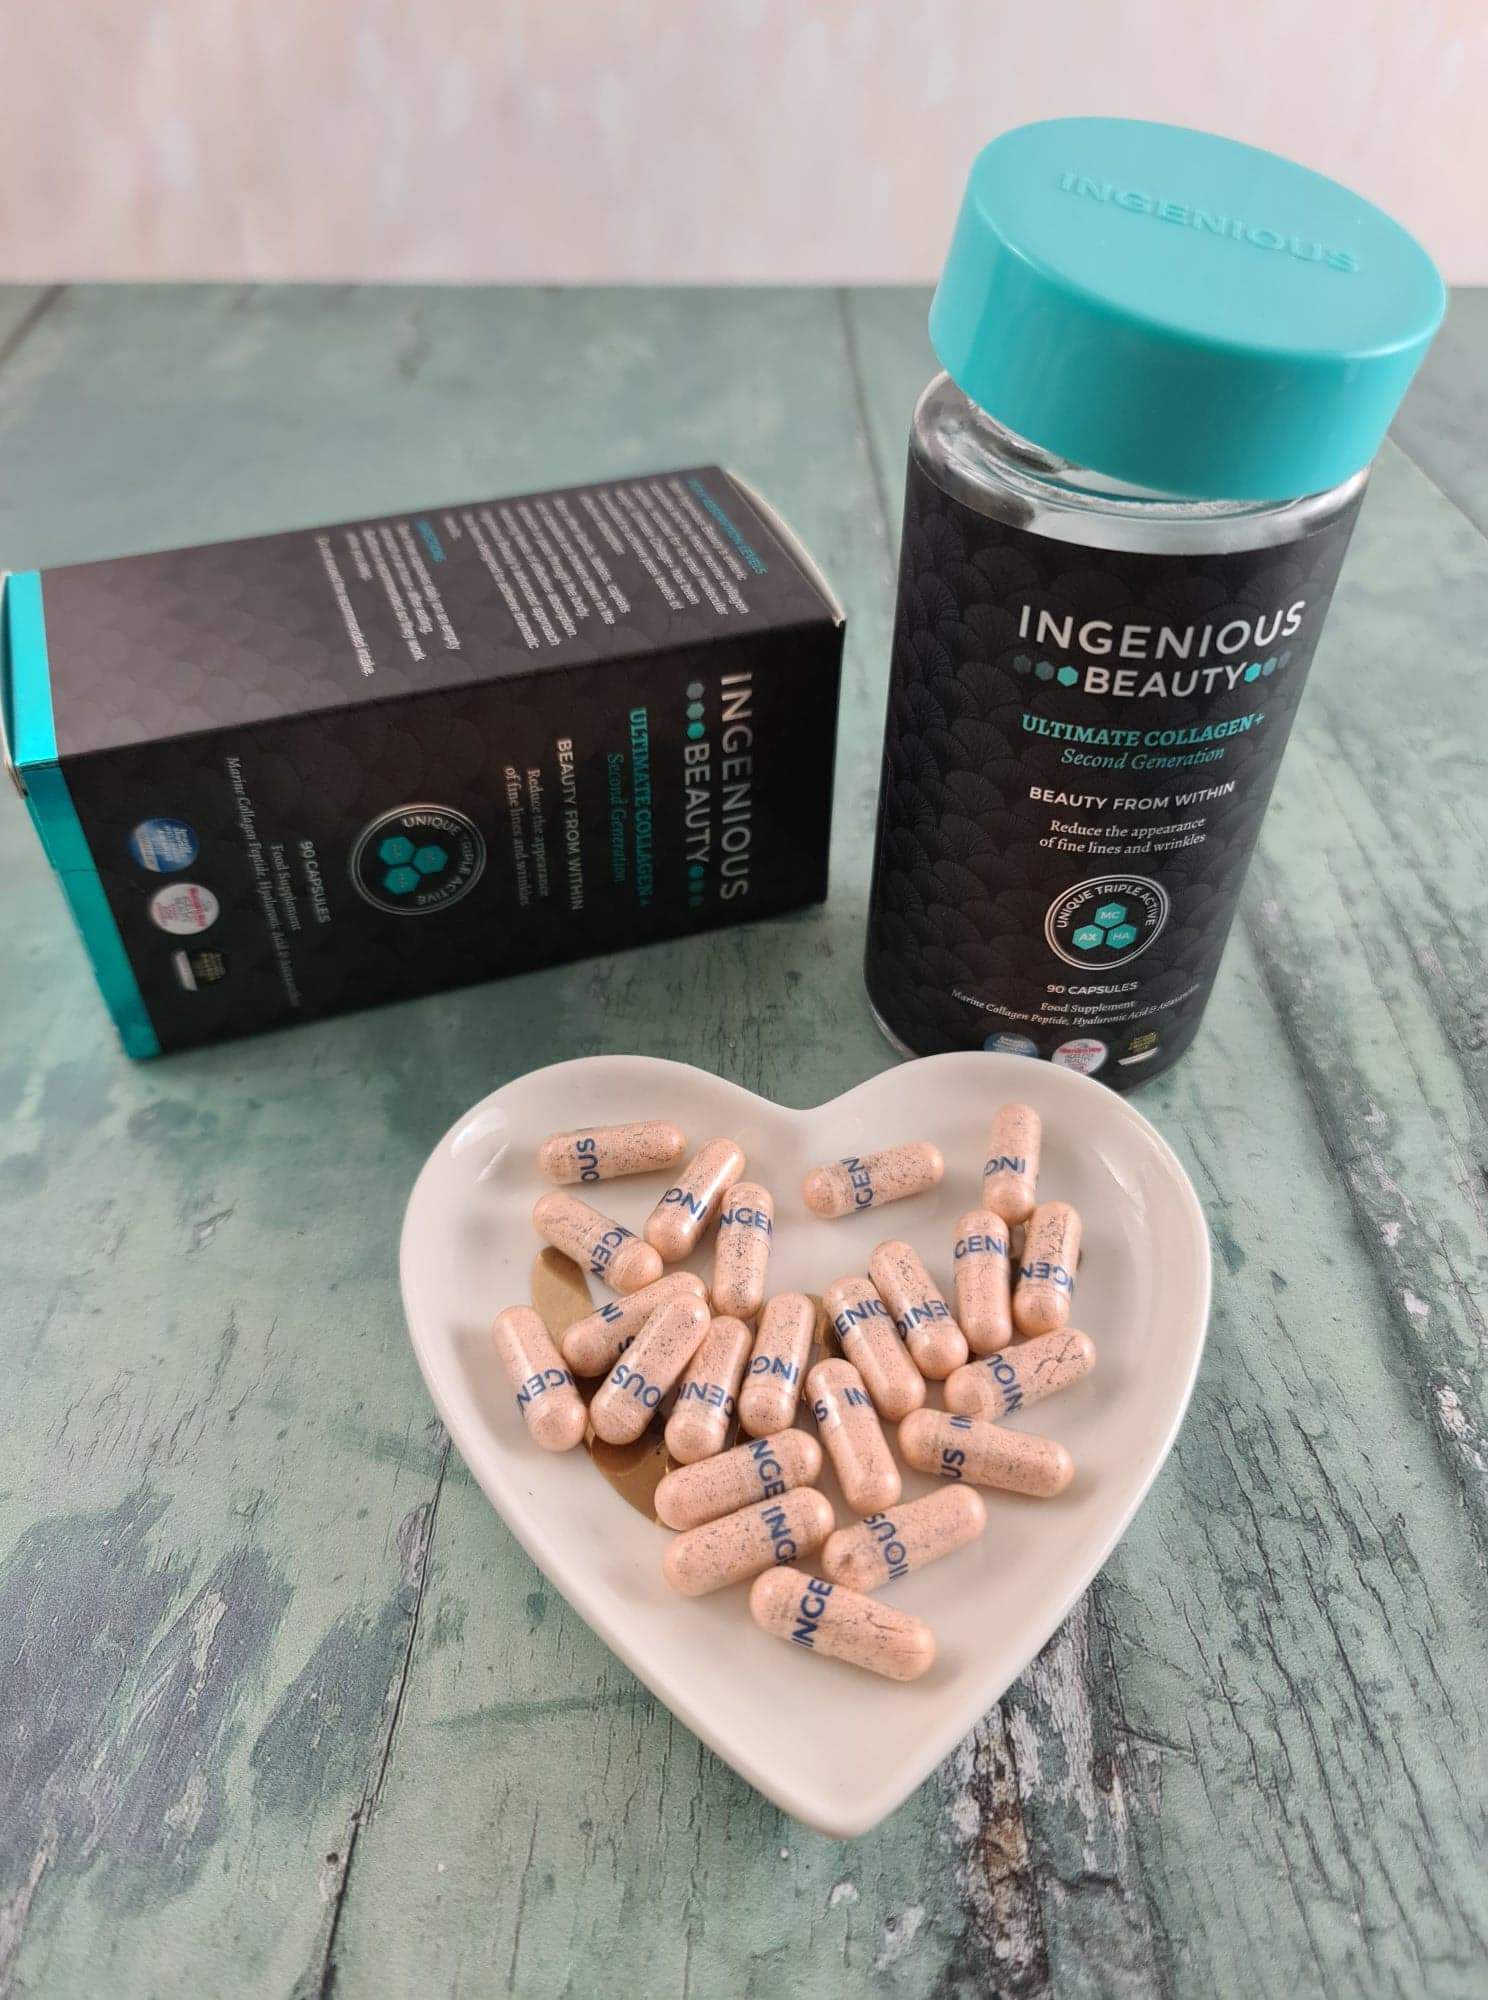 Ingenious Beauty Capsules review